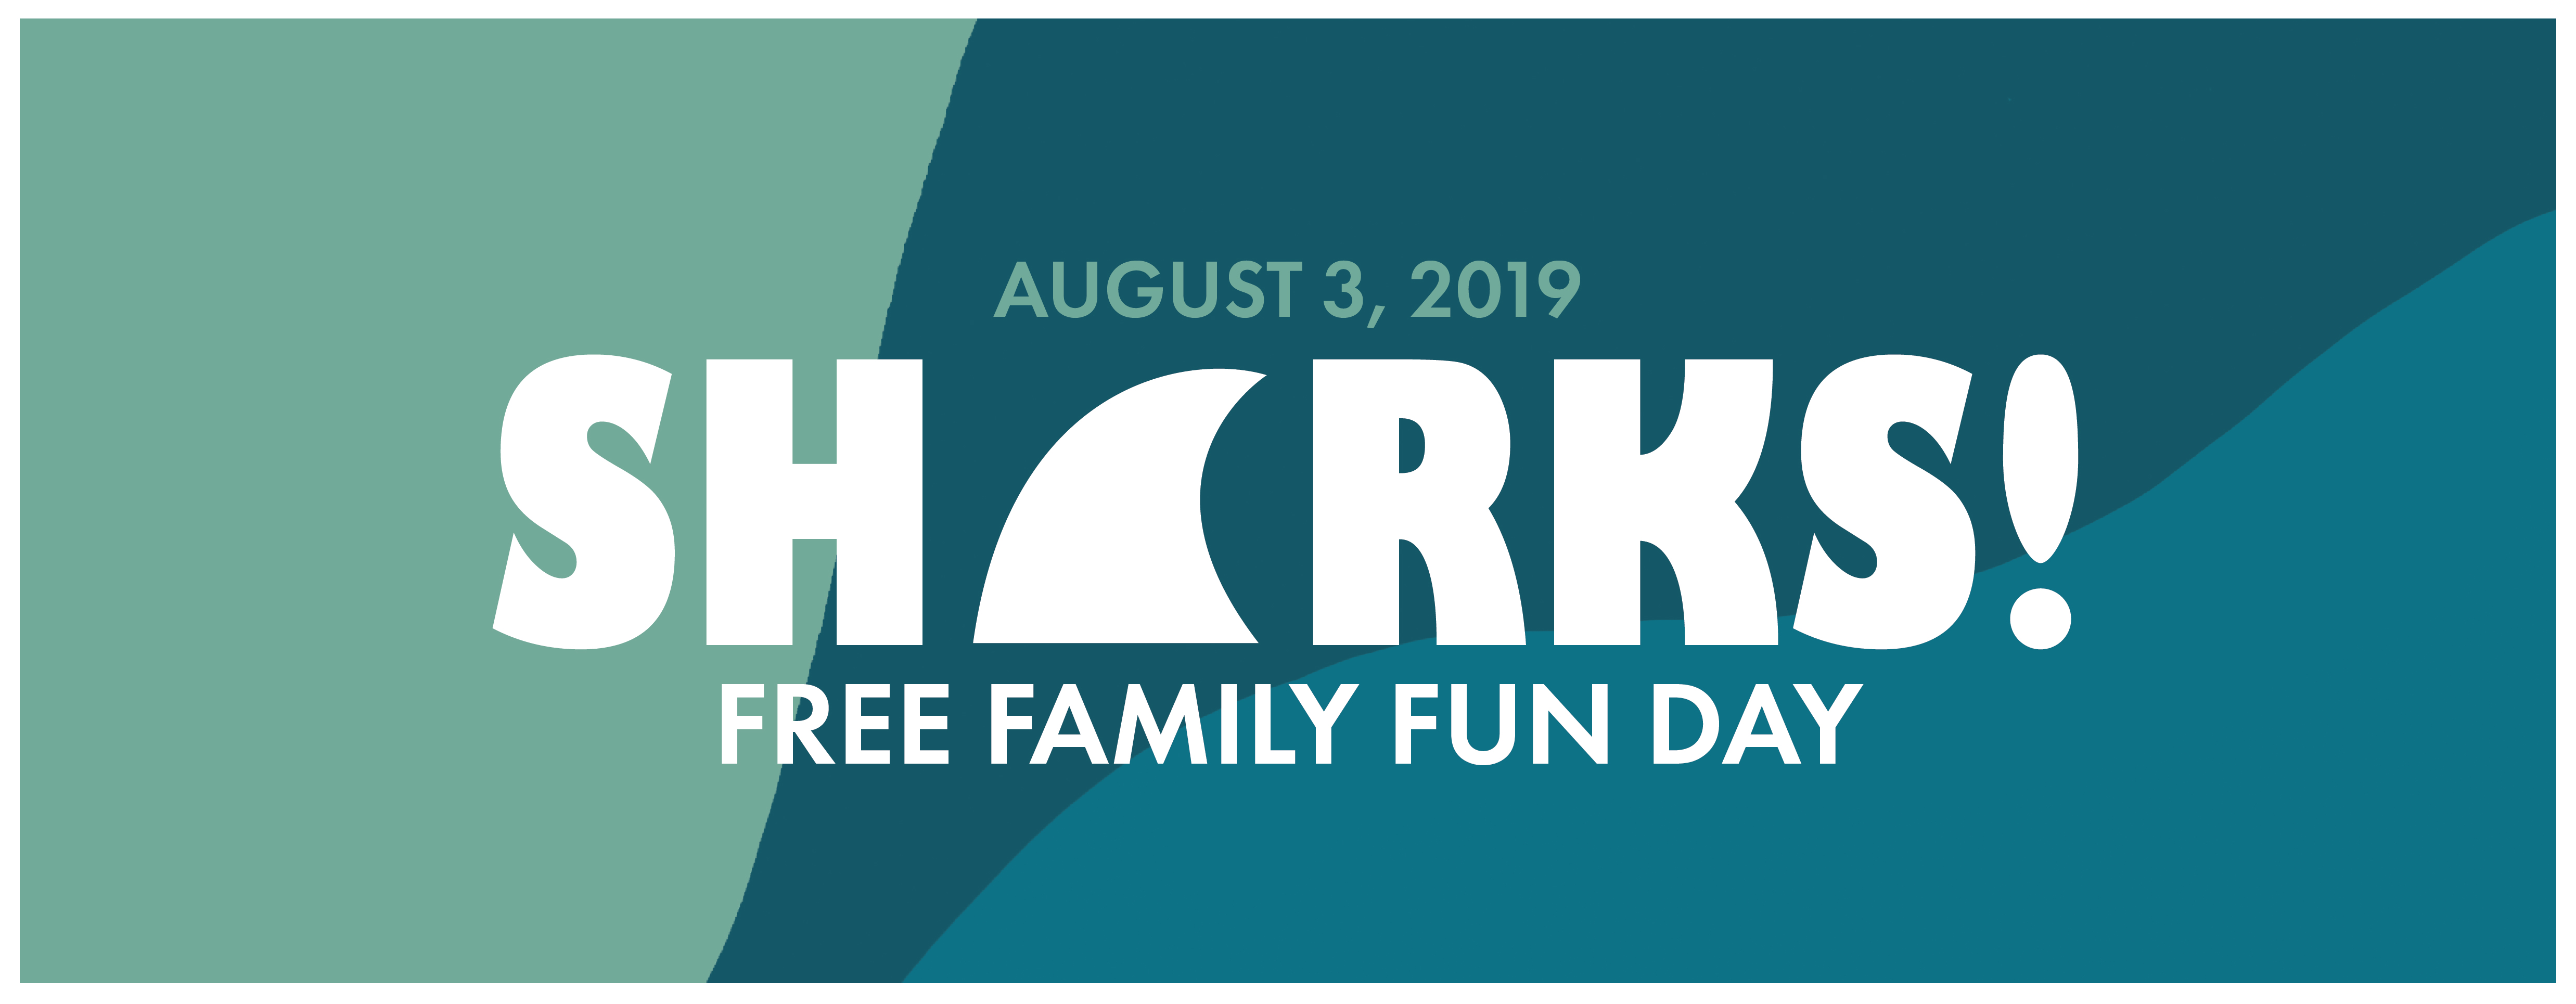 Sharks, Family Fun Day August 3, 2019